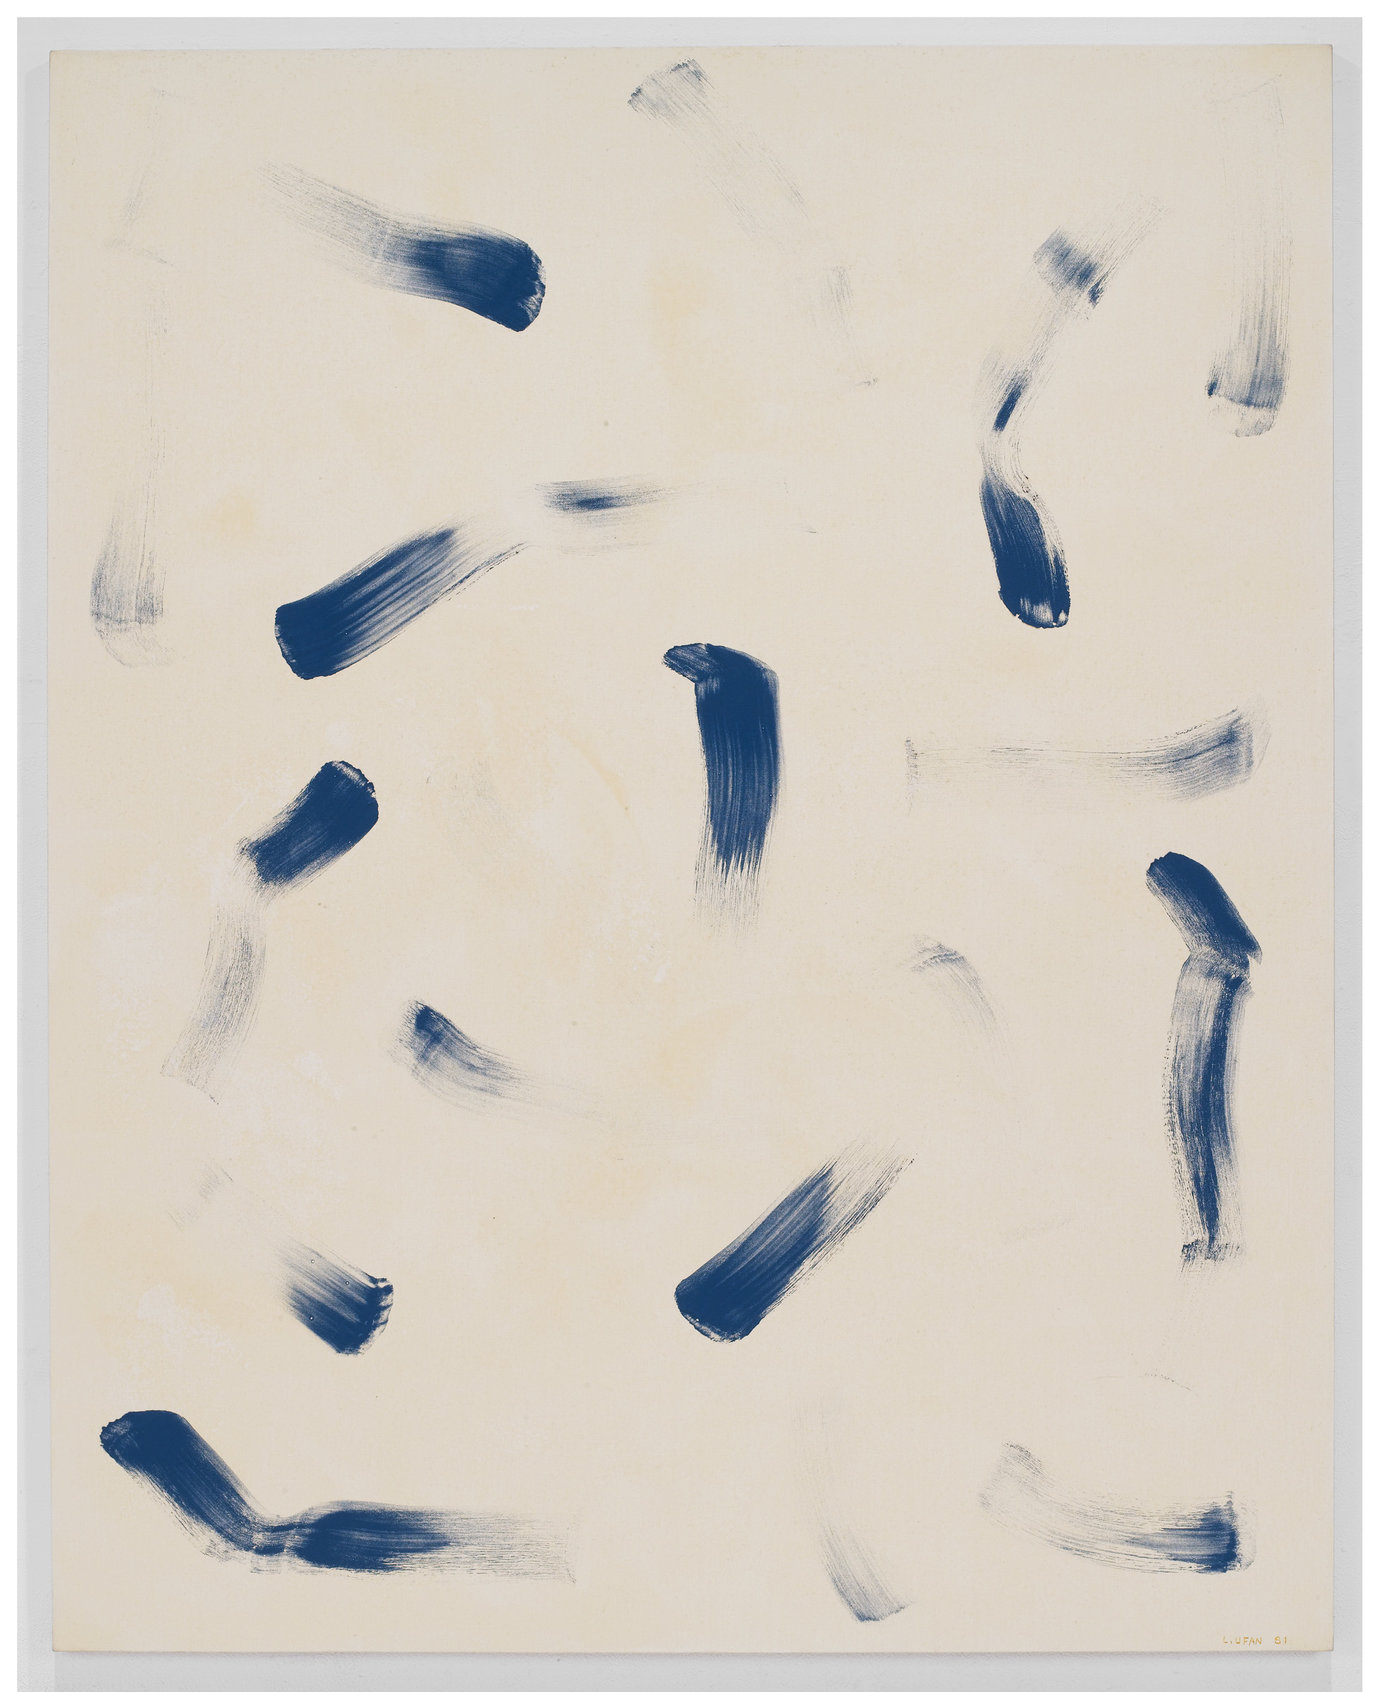 ", 1981. glue and stone pigment on canvas, 89-3/8"" x 71-1/2"" (227 cm x 181.7 cm)."